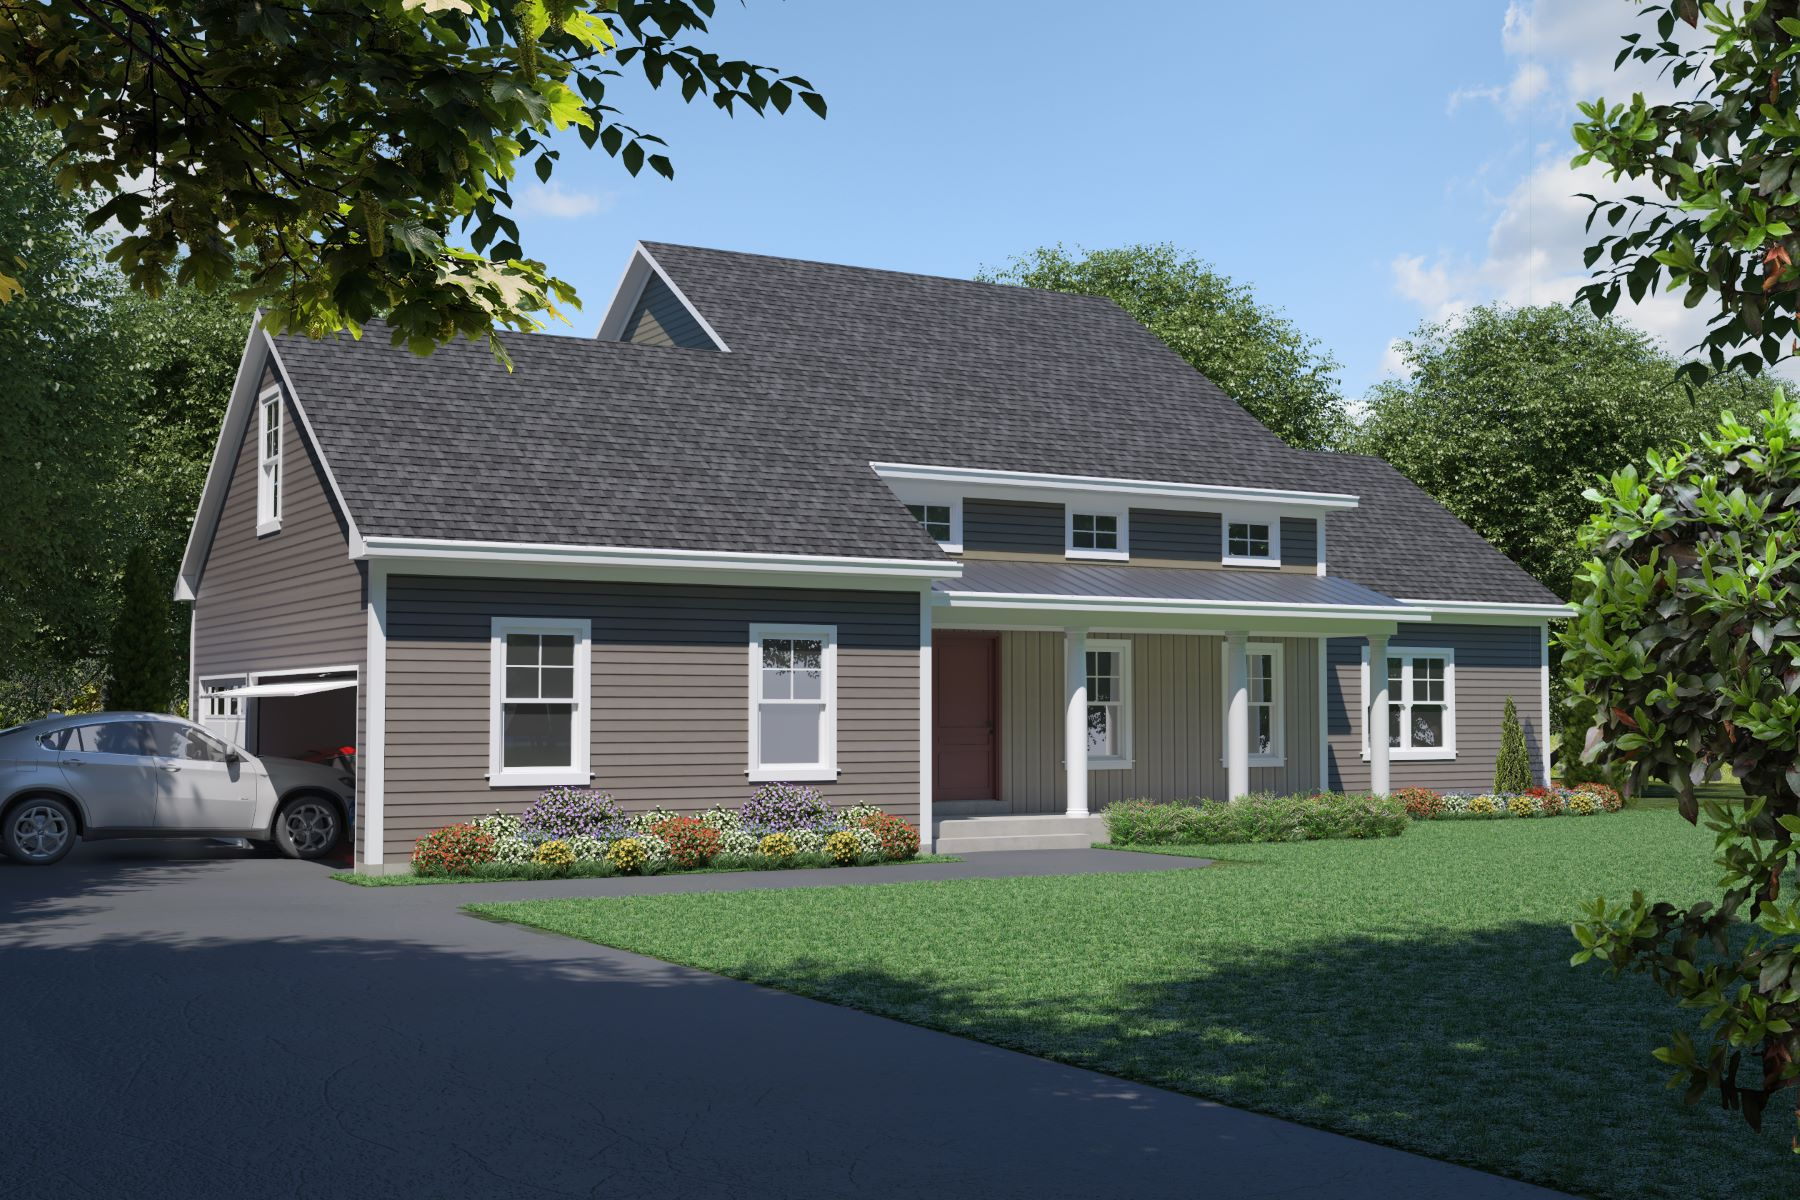 single family homes vì Bán tại To Be Built Classic Customizable Colonial 89 Quail Run Road Lot 18, Woodbury, Connecticut 06798 Hoa Kỳ